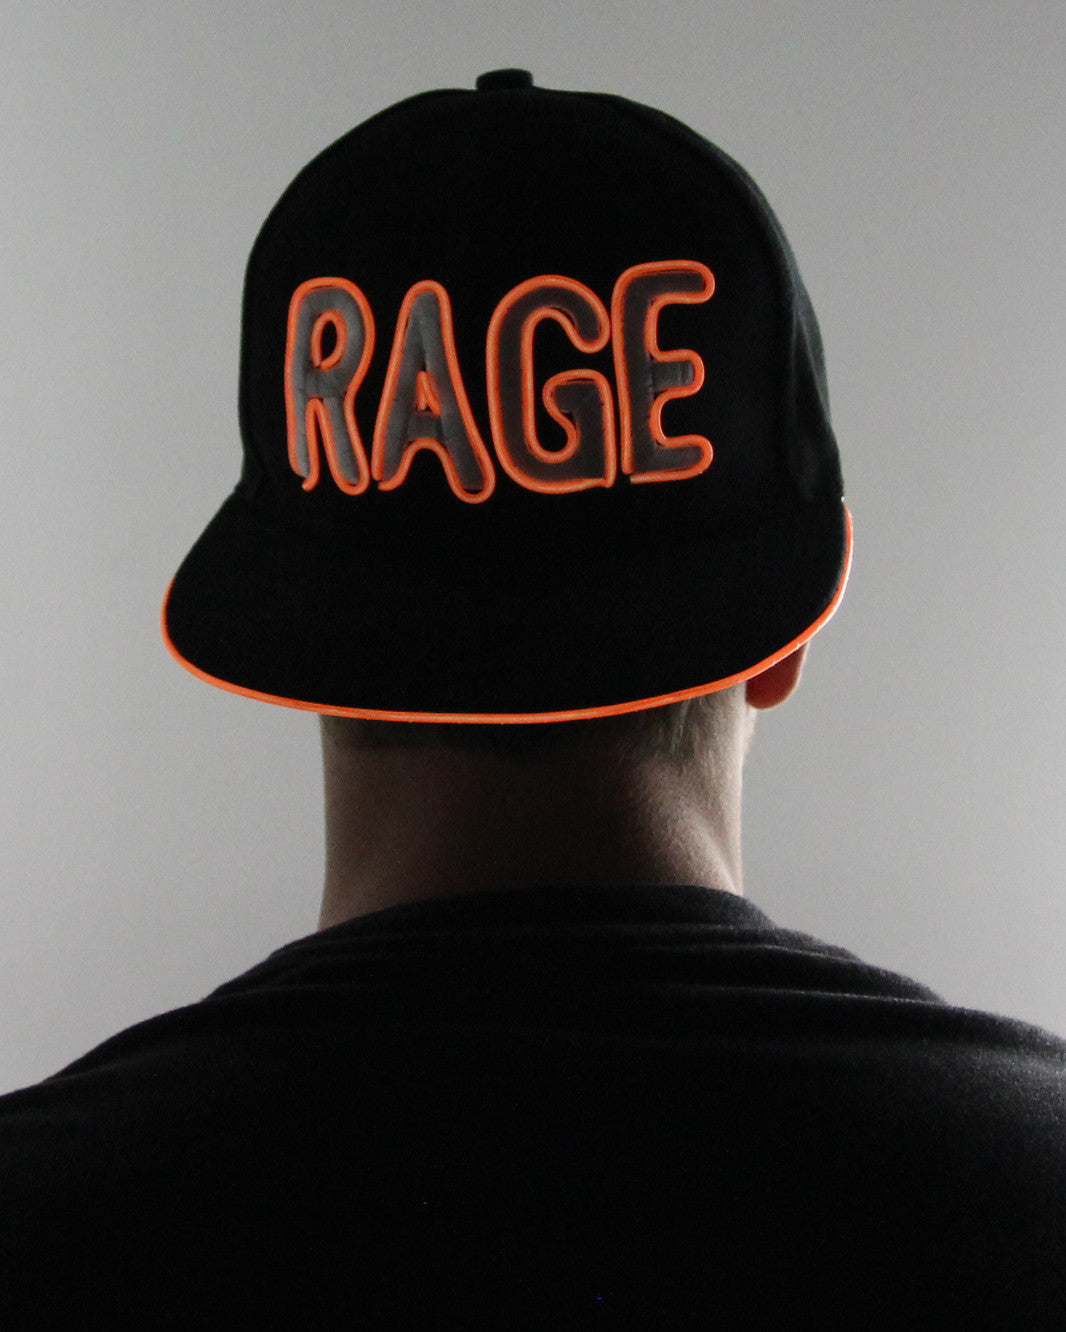 Light Up Hat - Rage - Electric Styles | World's Number 1 Light Up Shoe Store - {product_type}} -  - 3